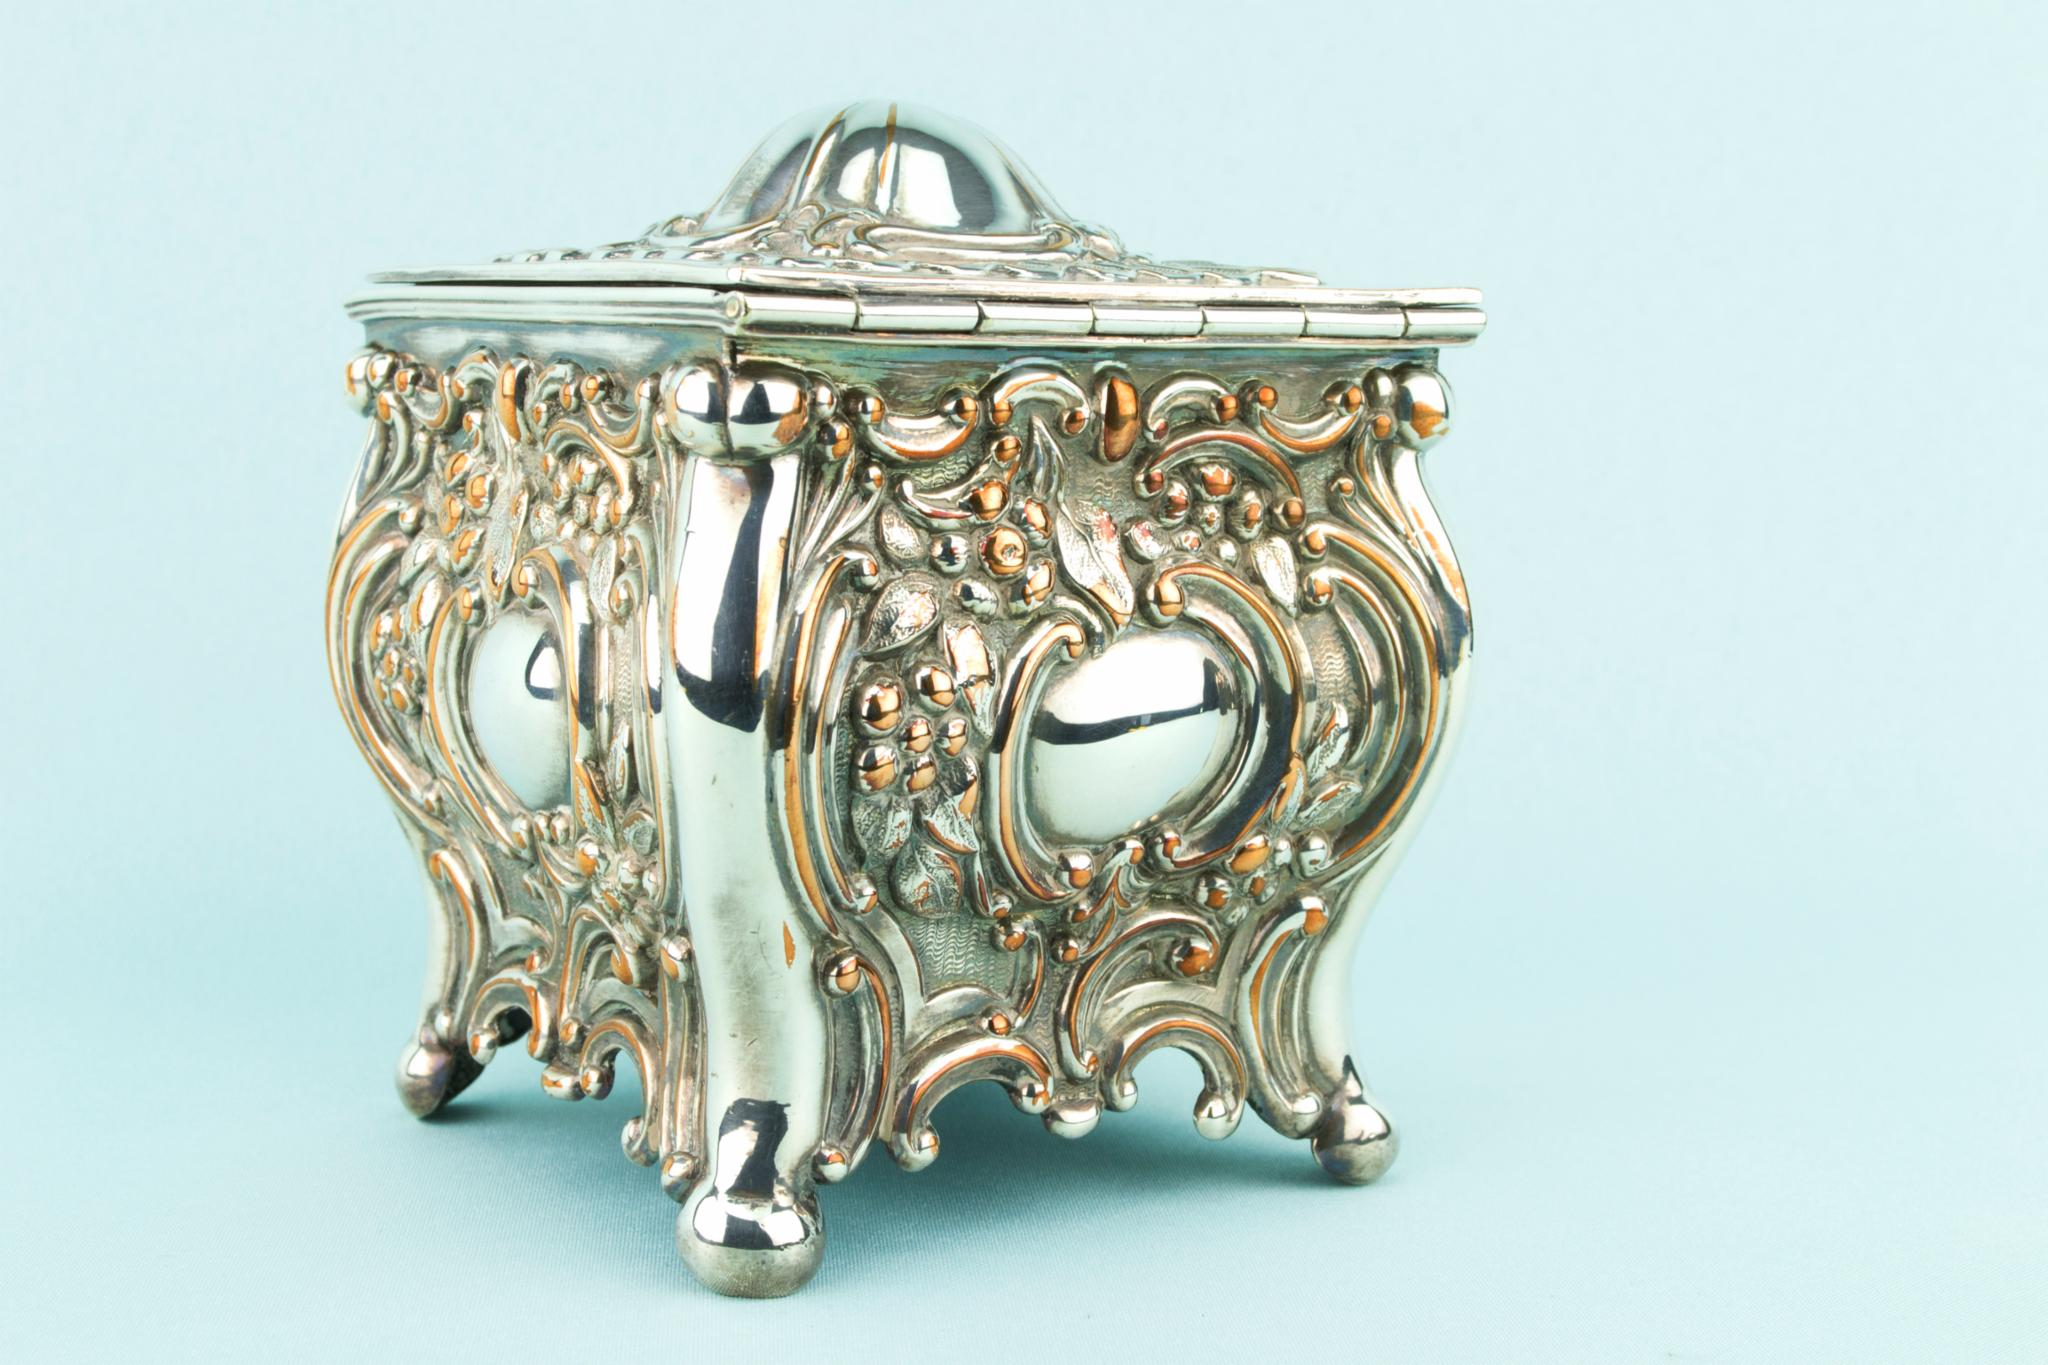 Silver Plated Tea Box, English Circa 1900